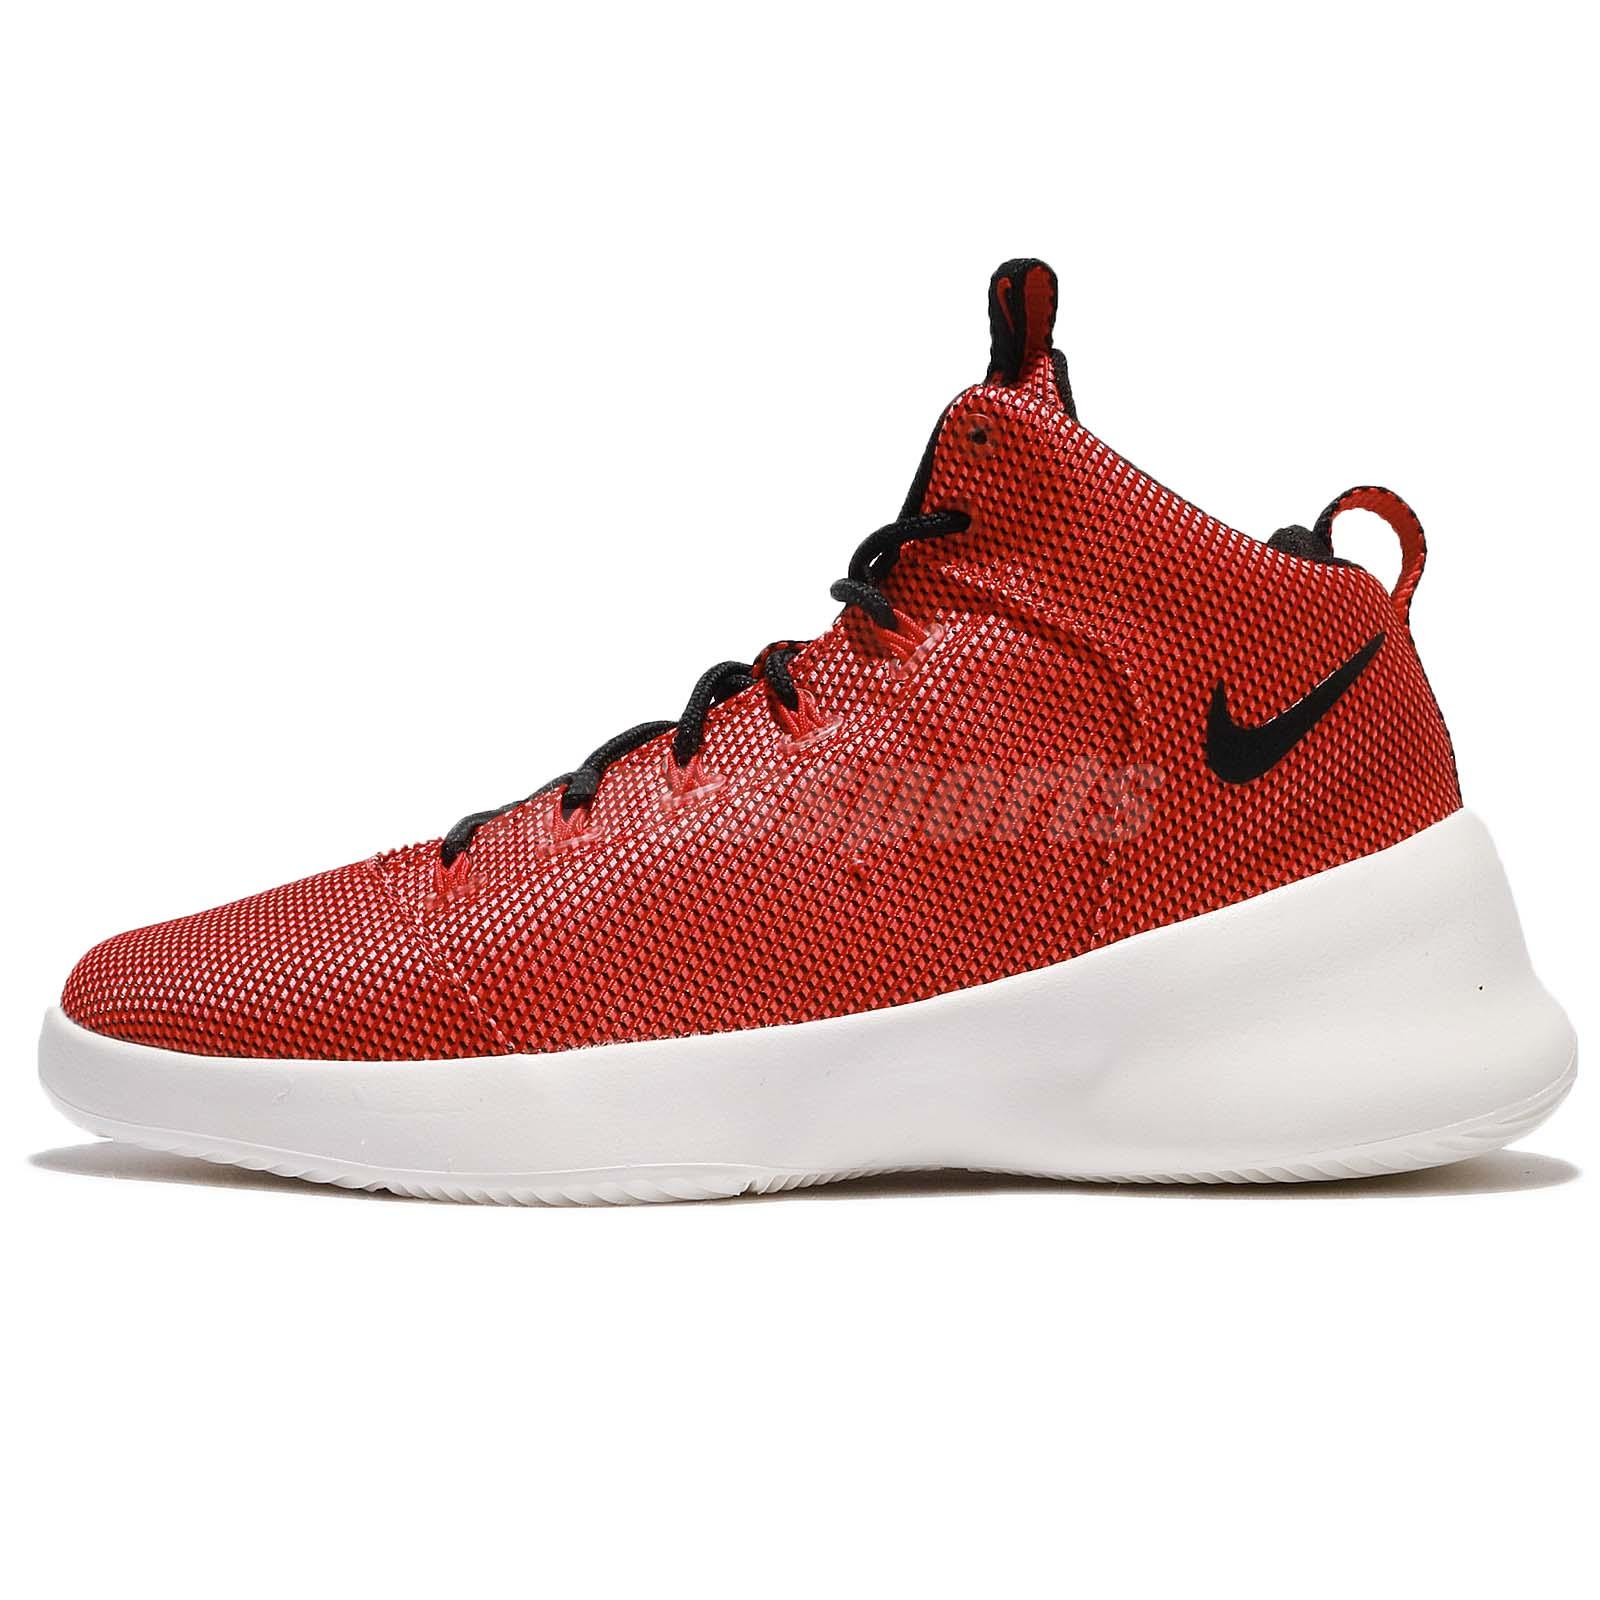 8f1838231dc Nike Hyperfresh Red